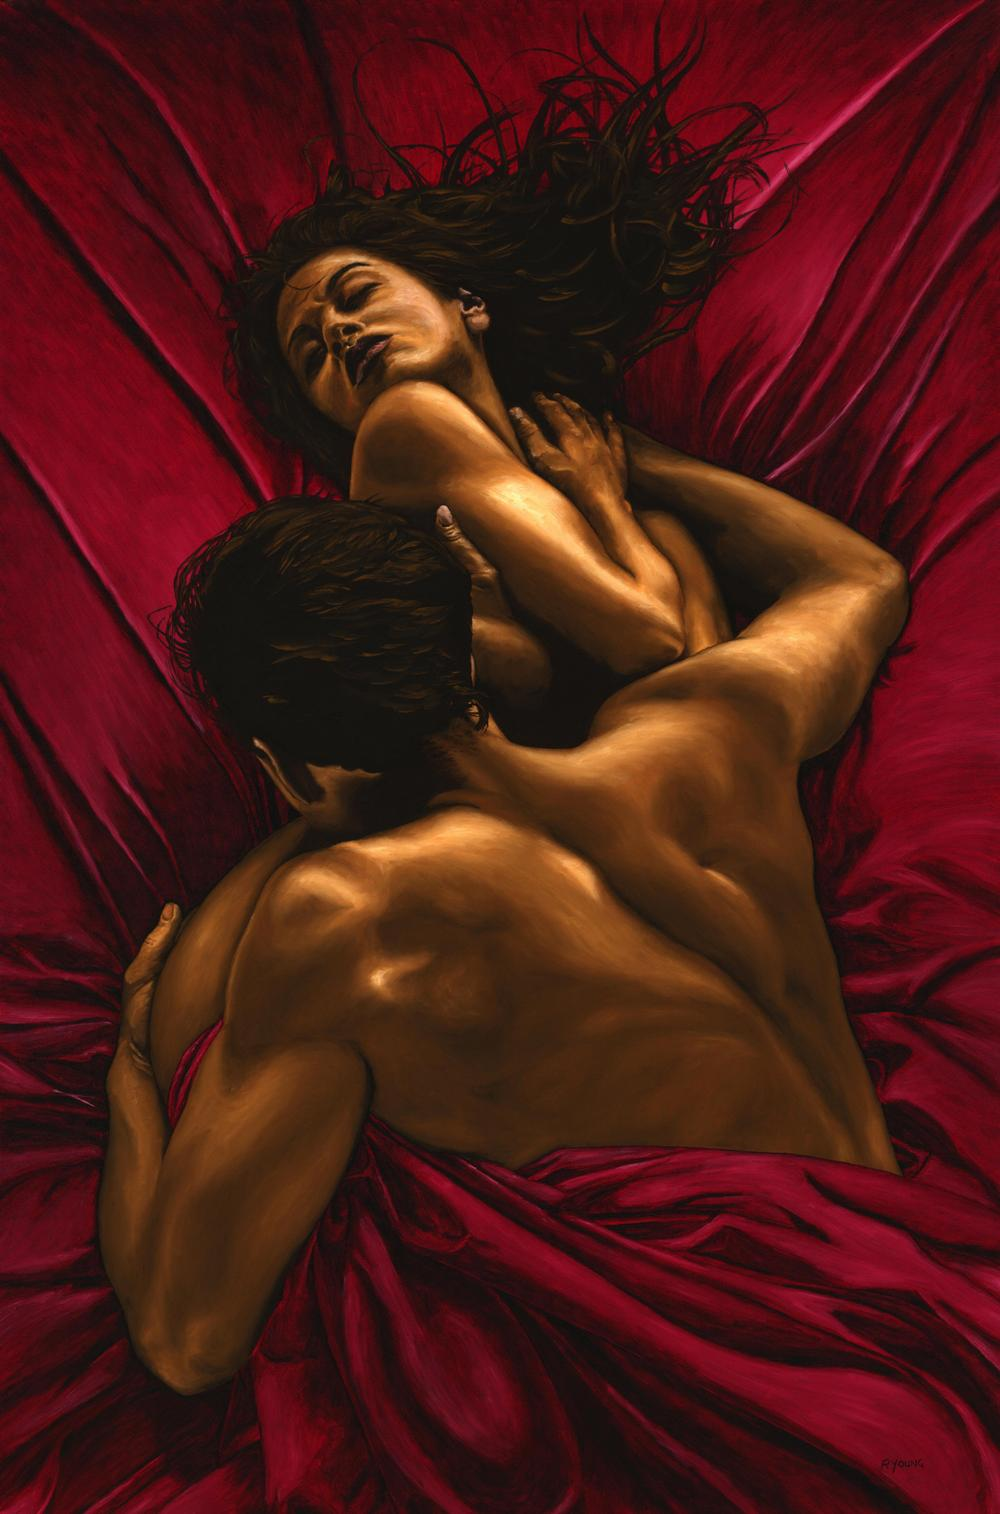 Artwork Galleries of Fine Art. The Passion